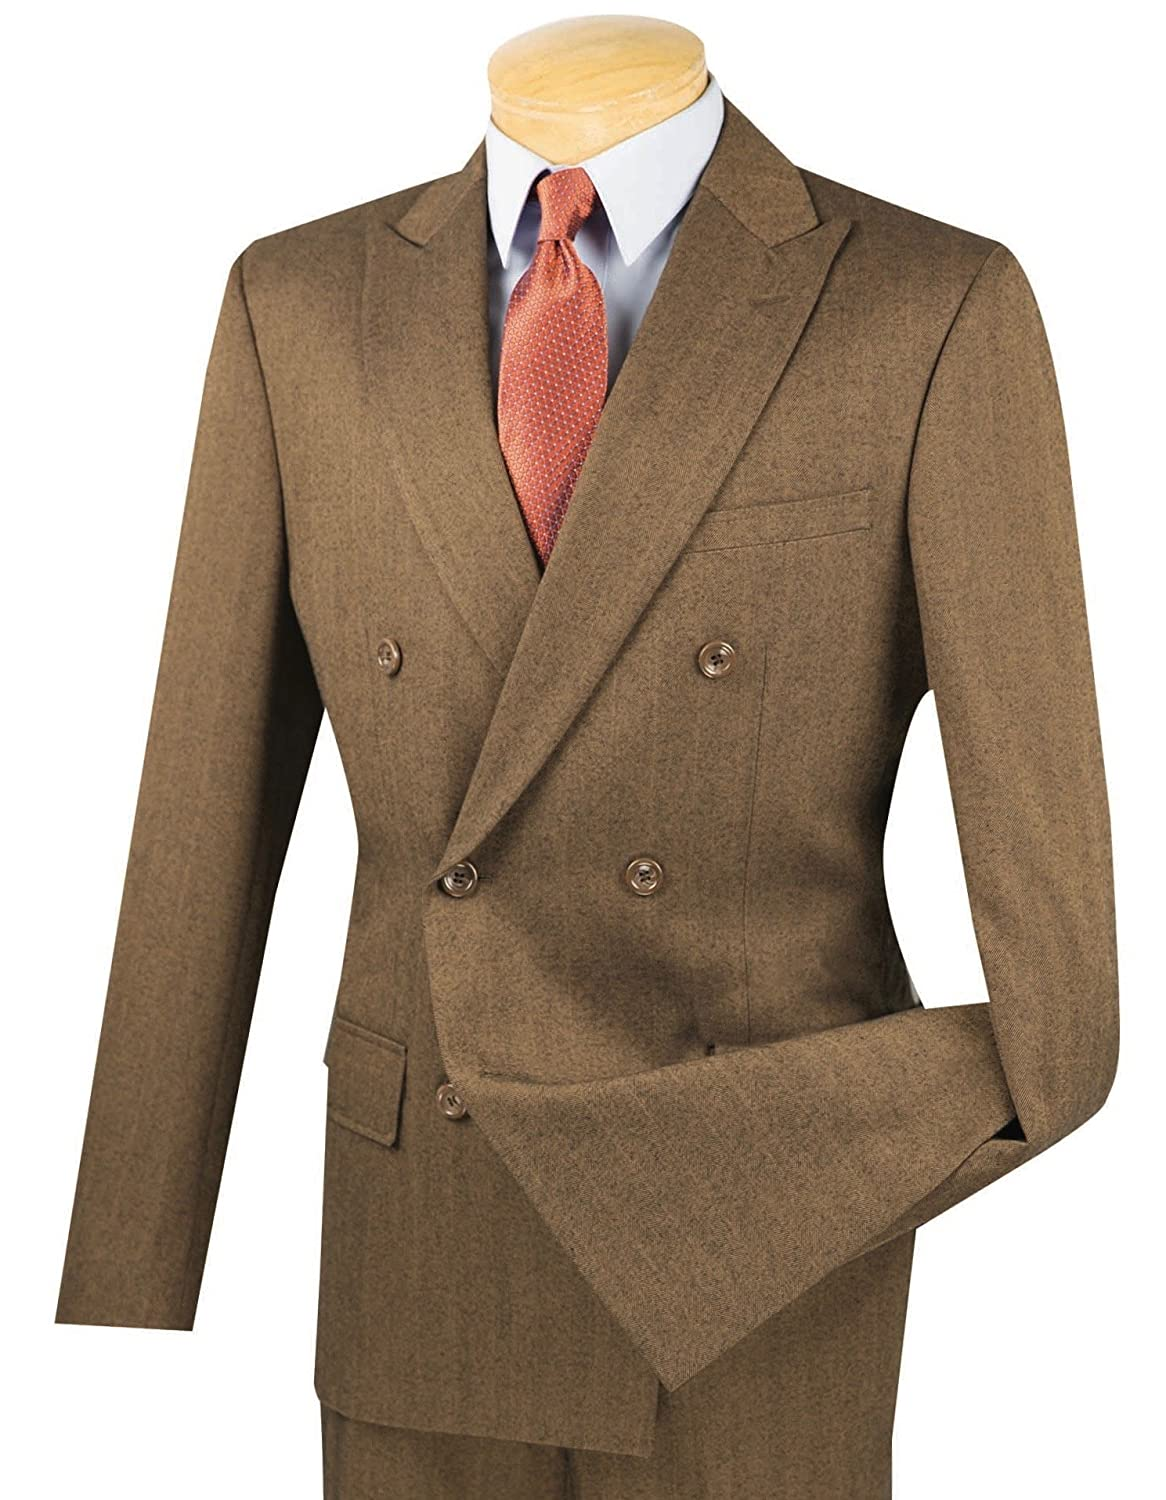 1940s Mens Suits | Gangster, Mobster, Zoot Suits VINCI Mens Brushed Herringbone Striped Double Breasted 6 Button Slim-Fit Flannel Suit New $109.95 AT vintagedancer.com